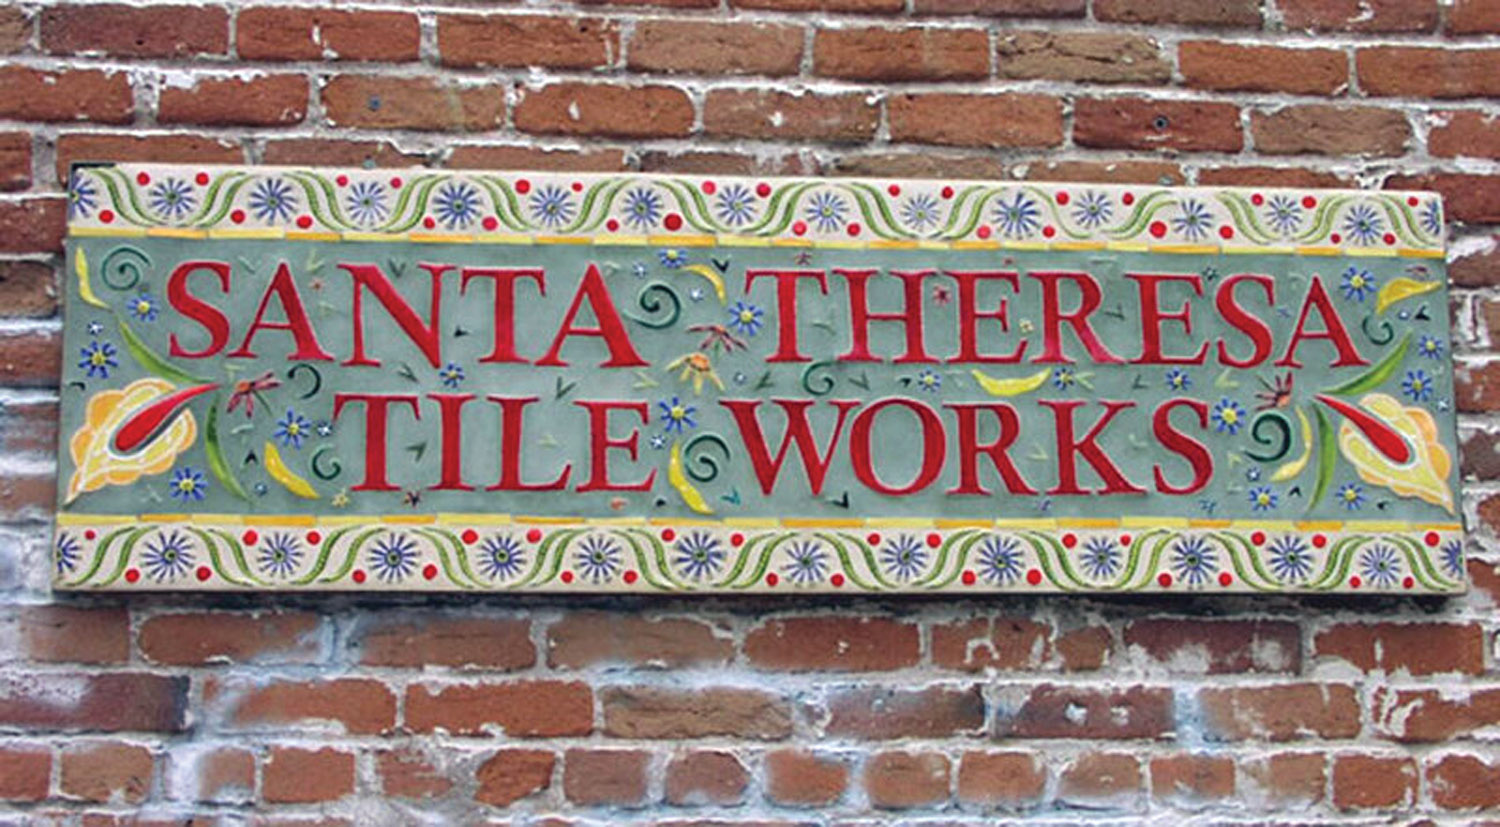 Santa Theresa Tile Works